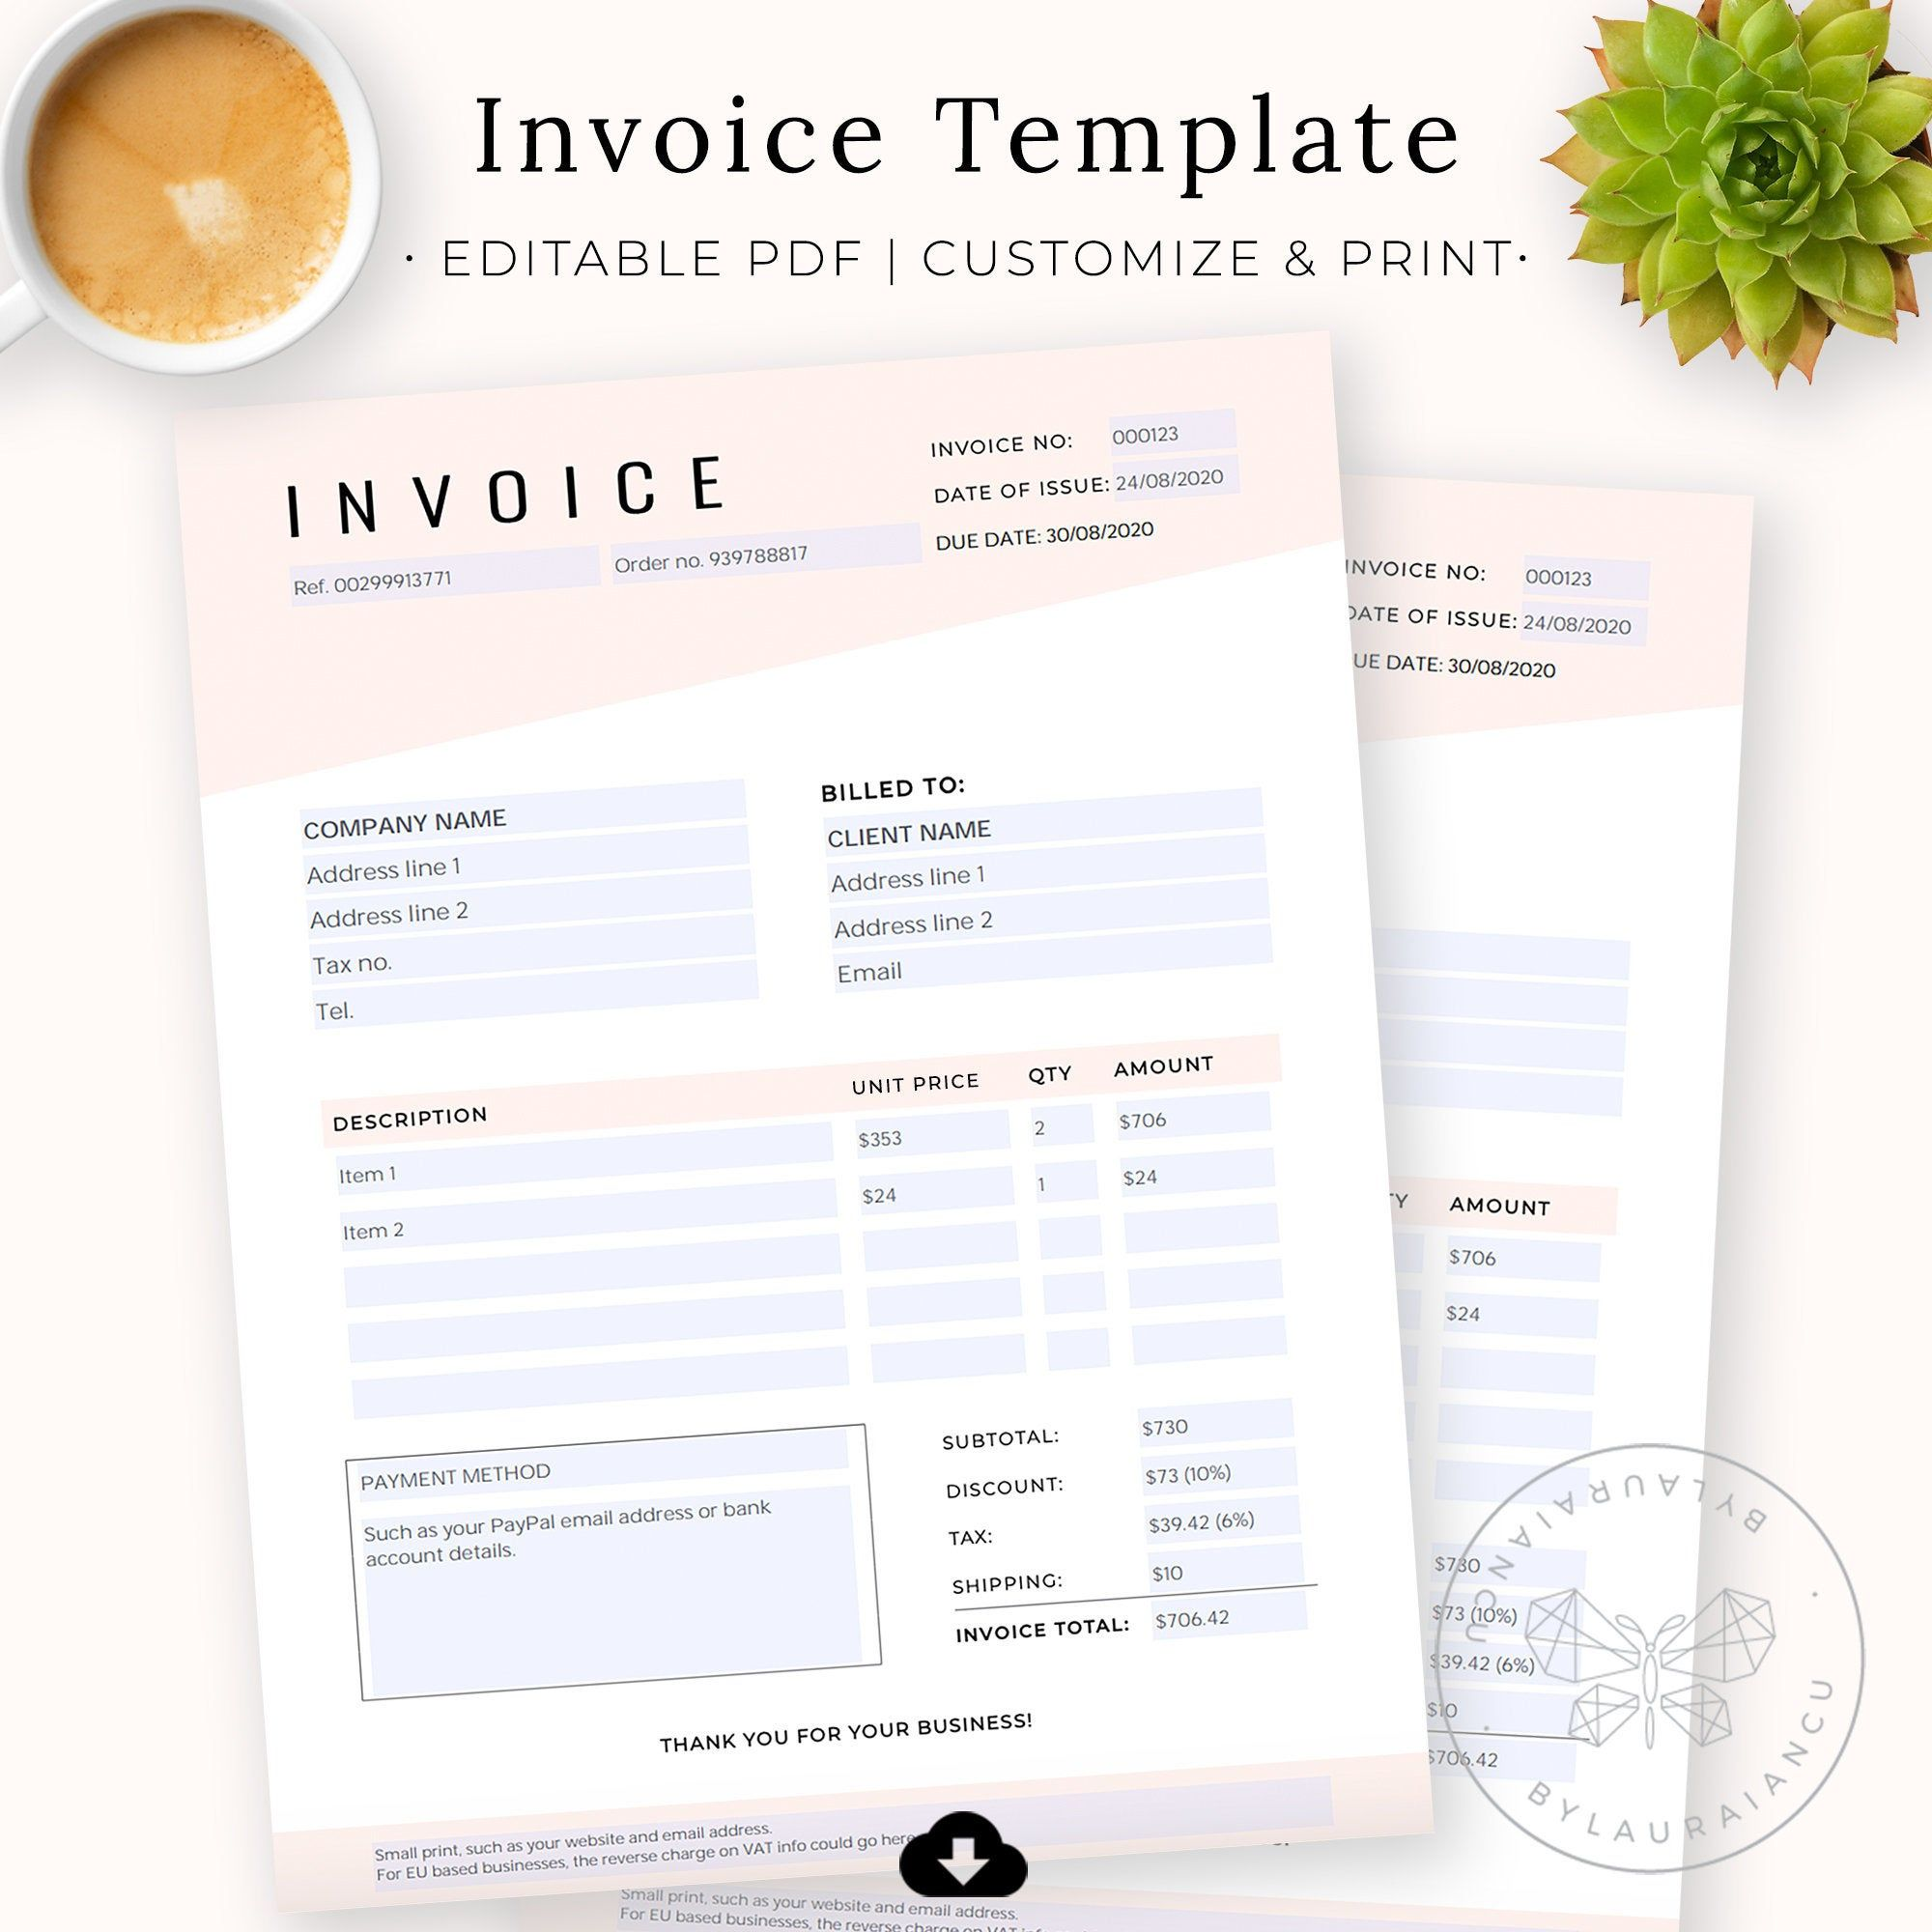 Invoice Template Editable Pdf Fillable Custom Order Form Etsy Invoice Template Daily Planner Pages Templates